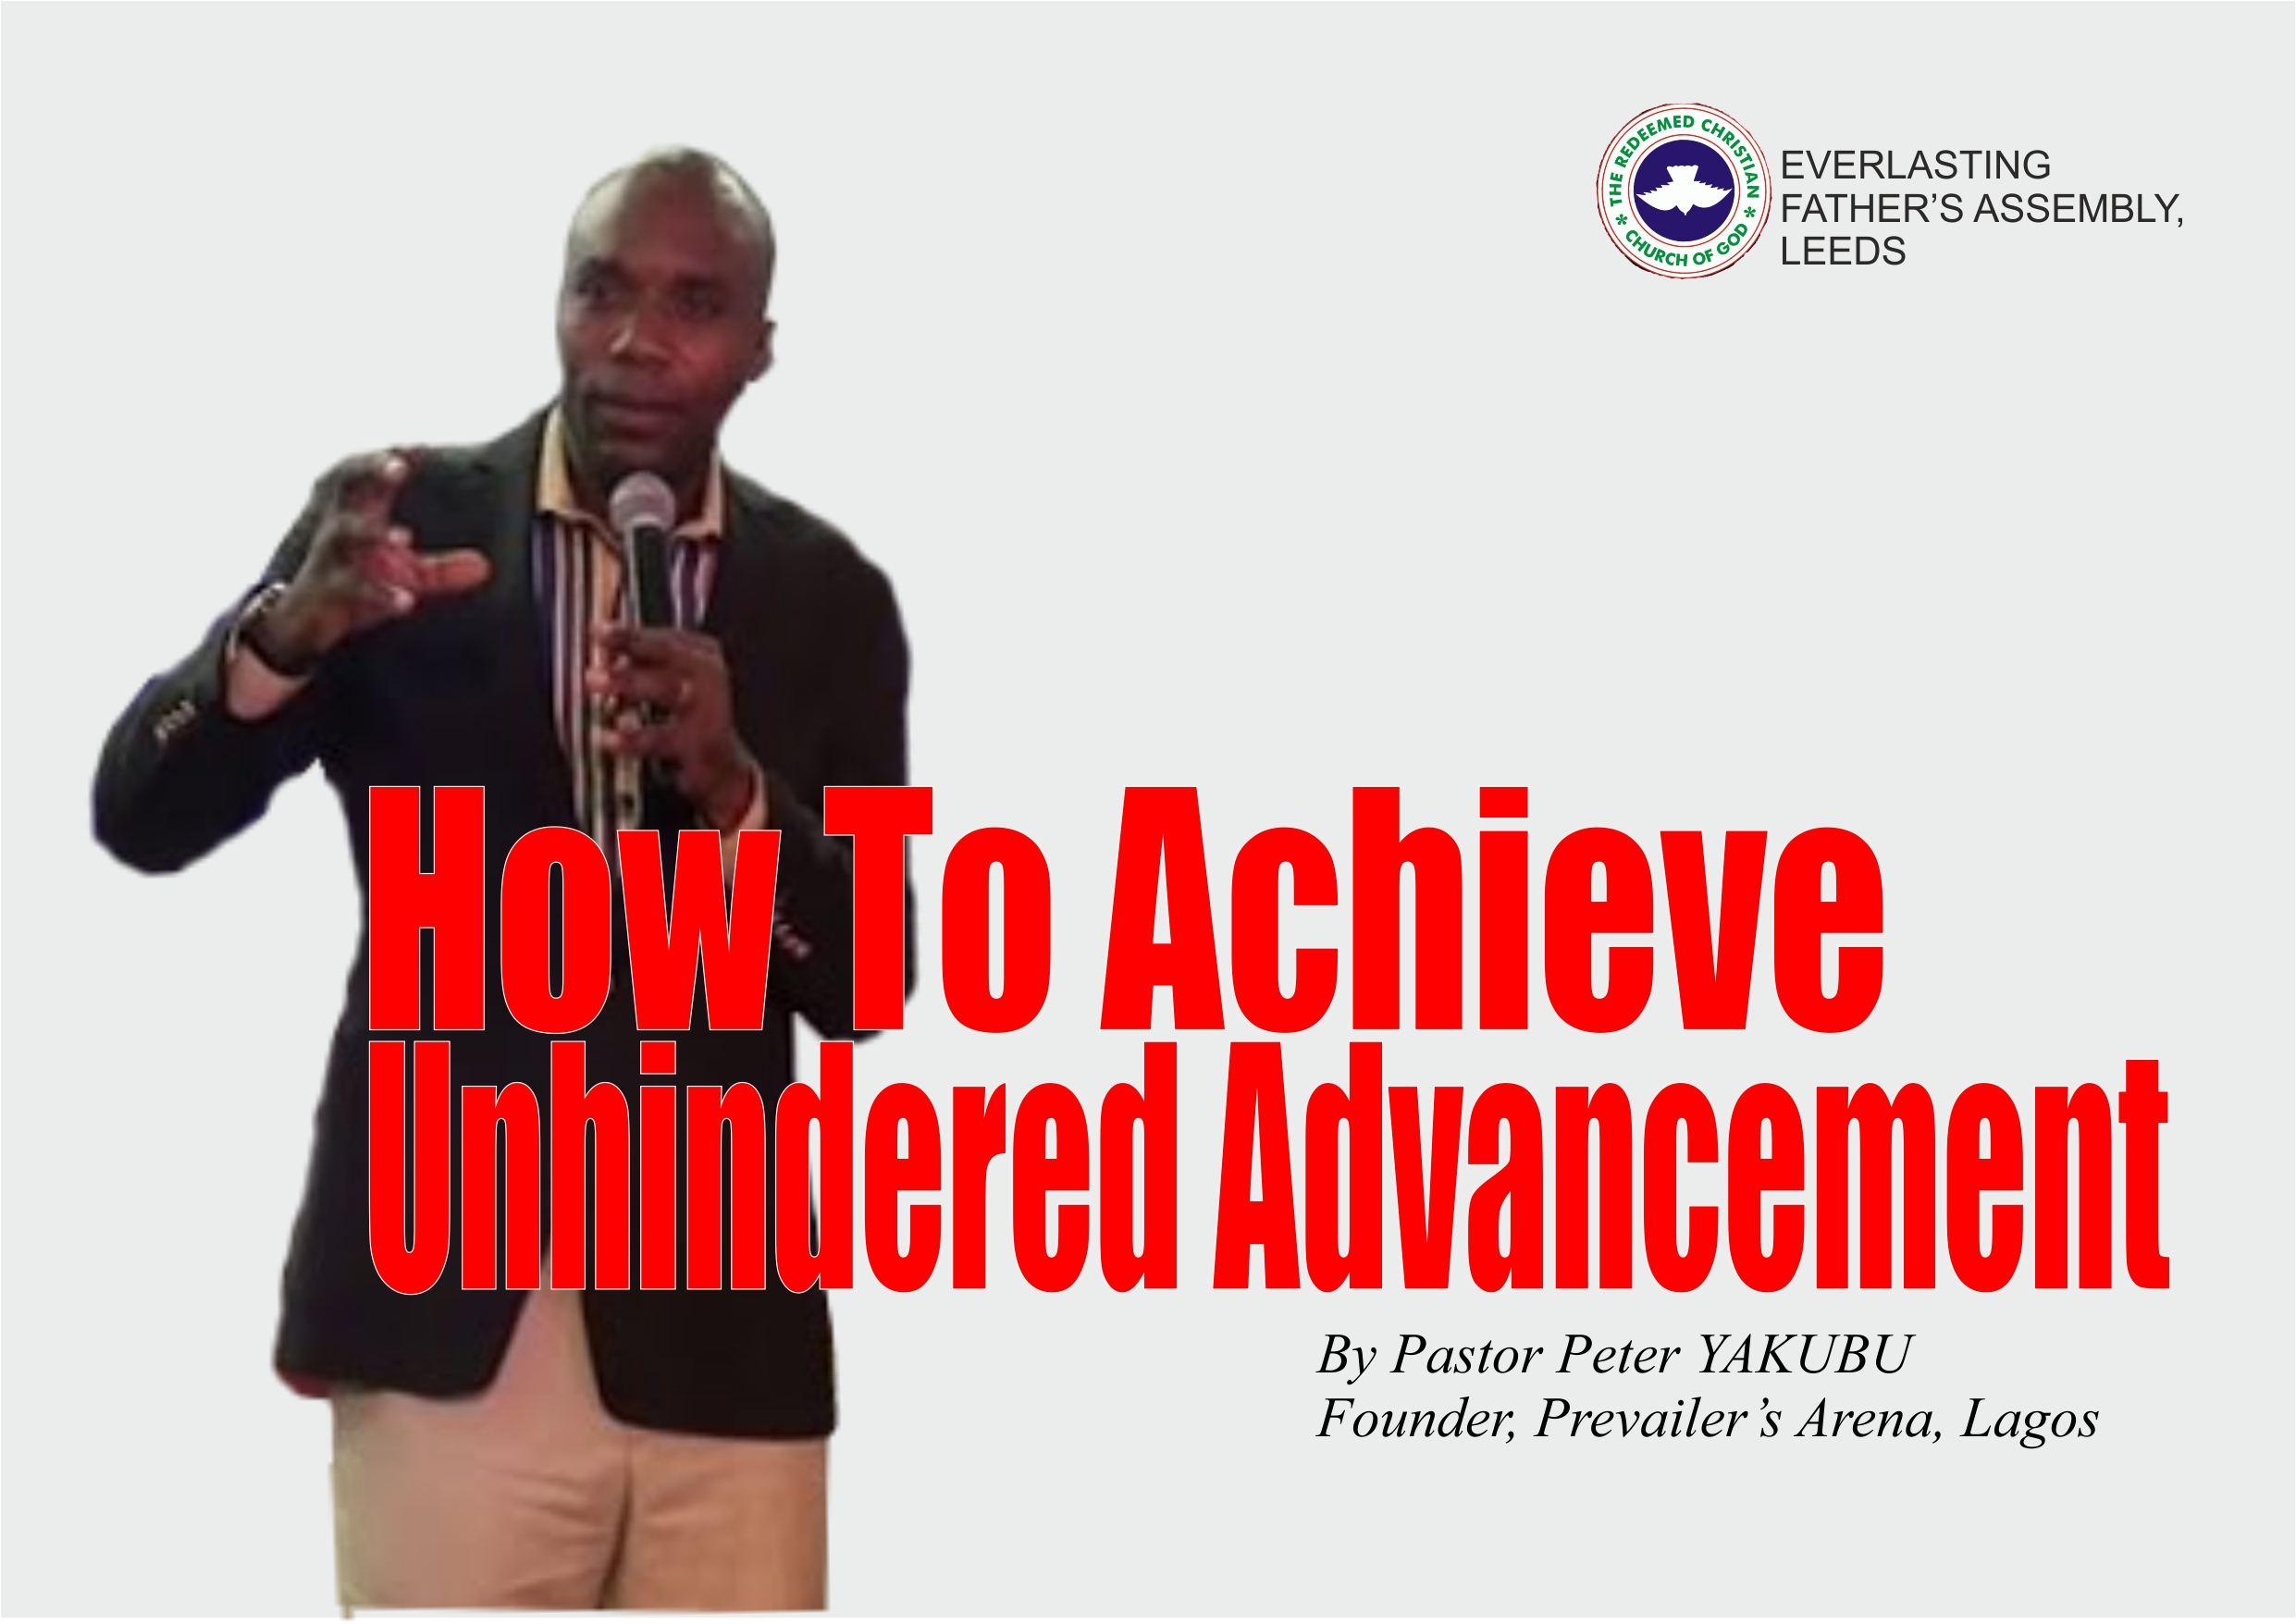 How To Achieve Unhindered Advancement, by Pastor Peter Yakubu